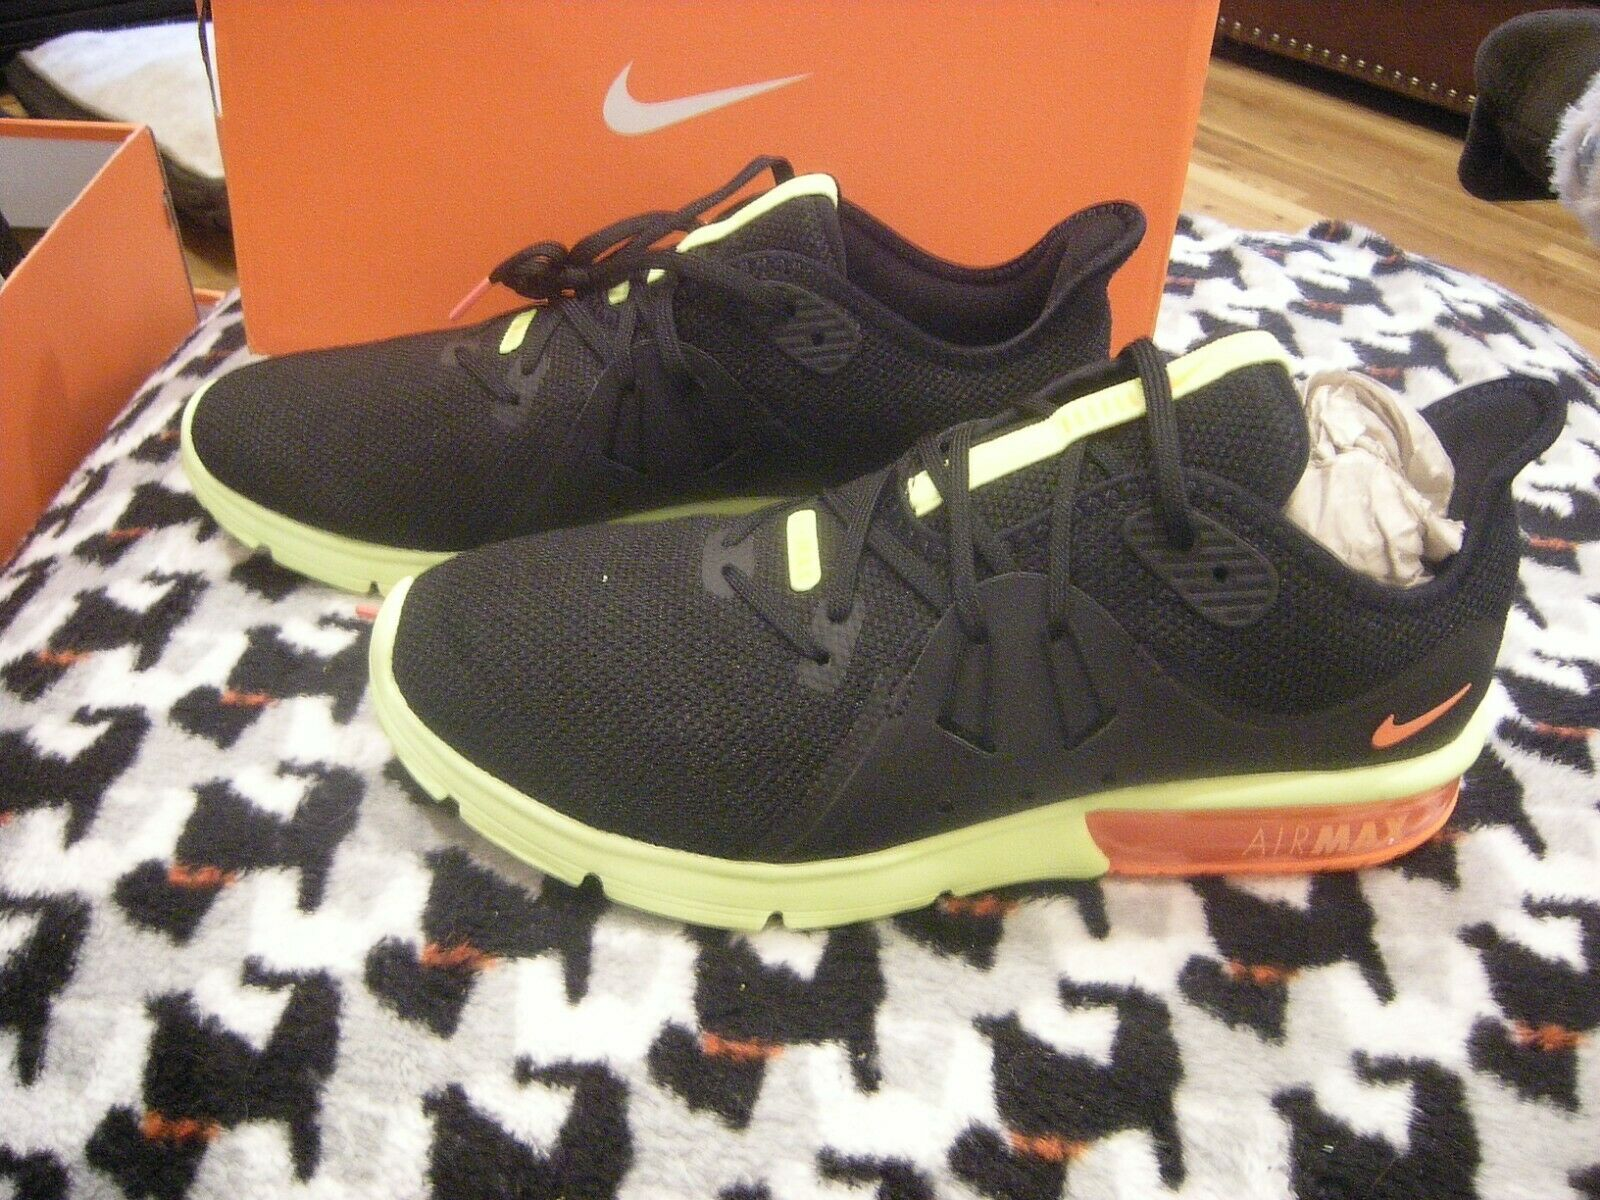 New Mens Black, orange & Yellow Nike Air Max Sequent 3 Tennis shoes Size 8.5